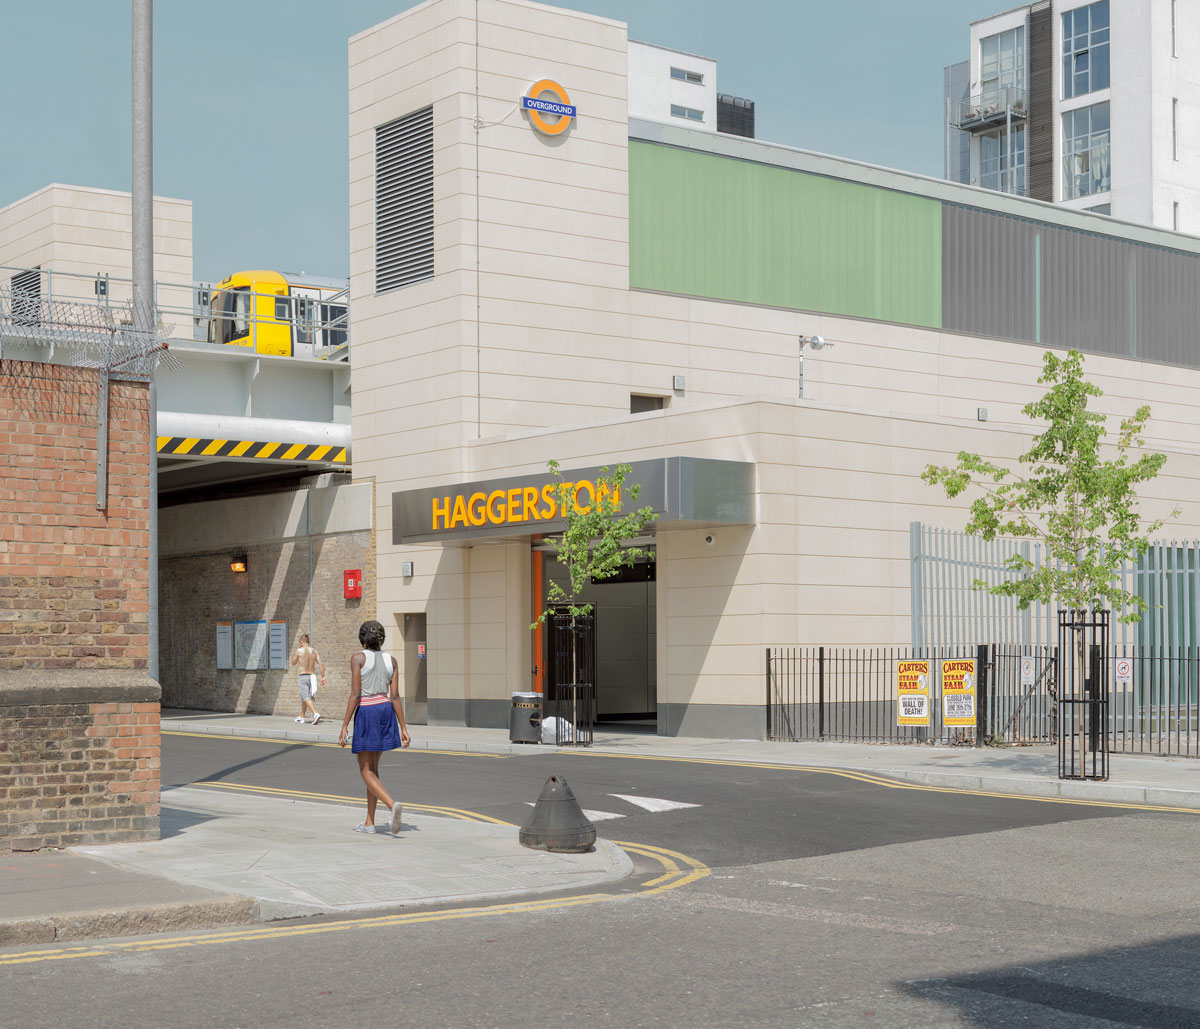 HMP_The-Corners_C.Dorley-Brown_Haggerston-Station-2010_online